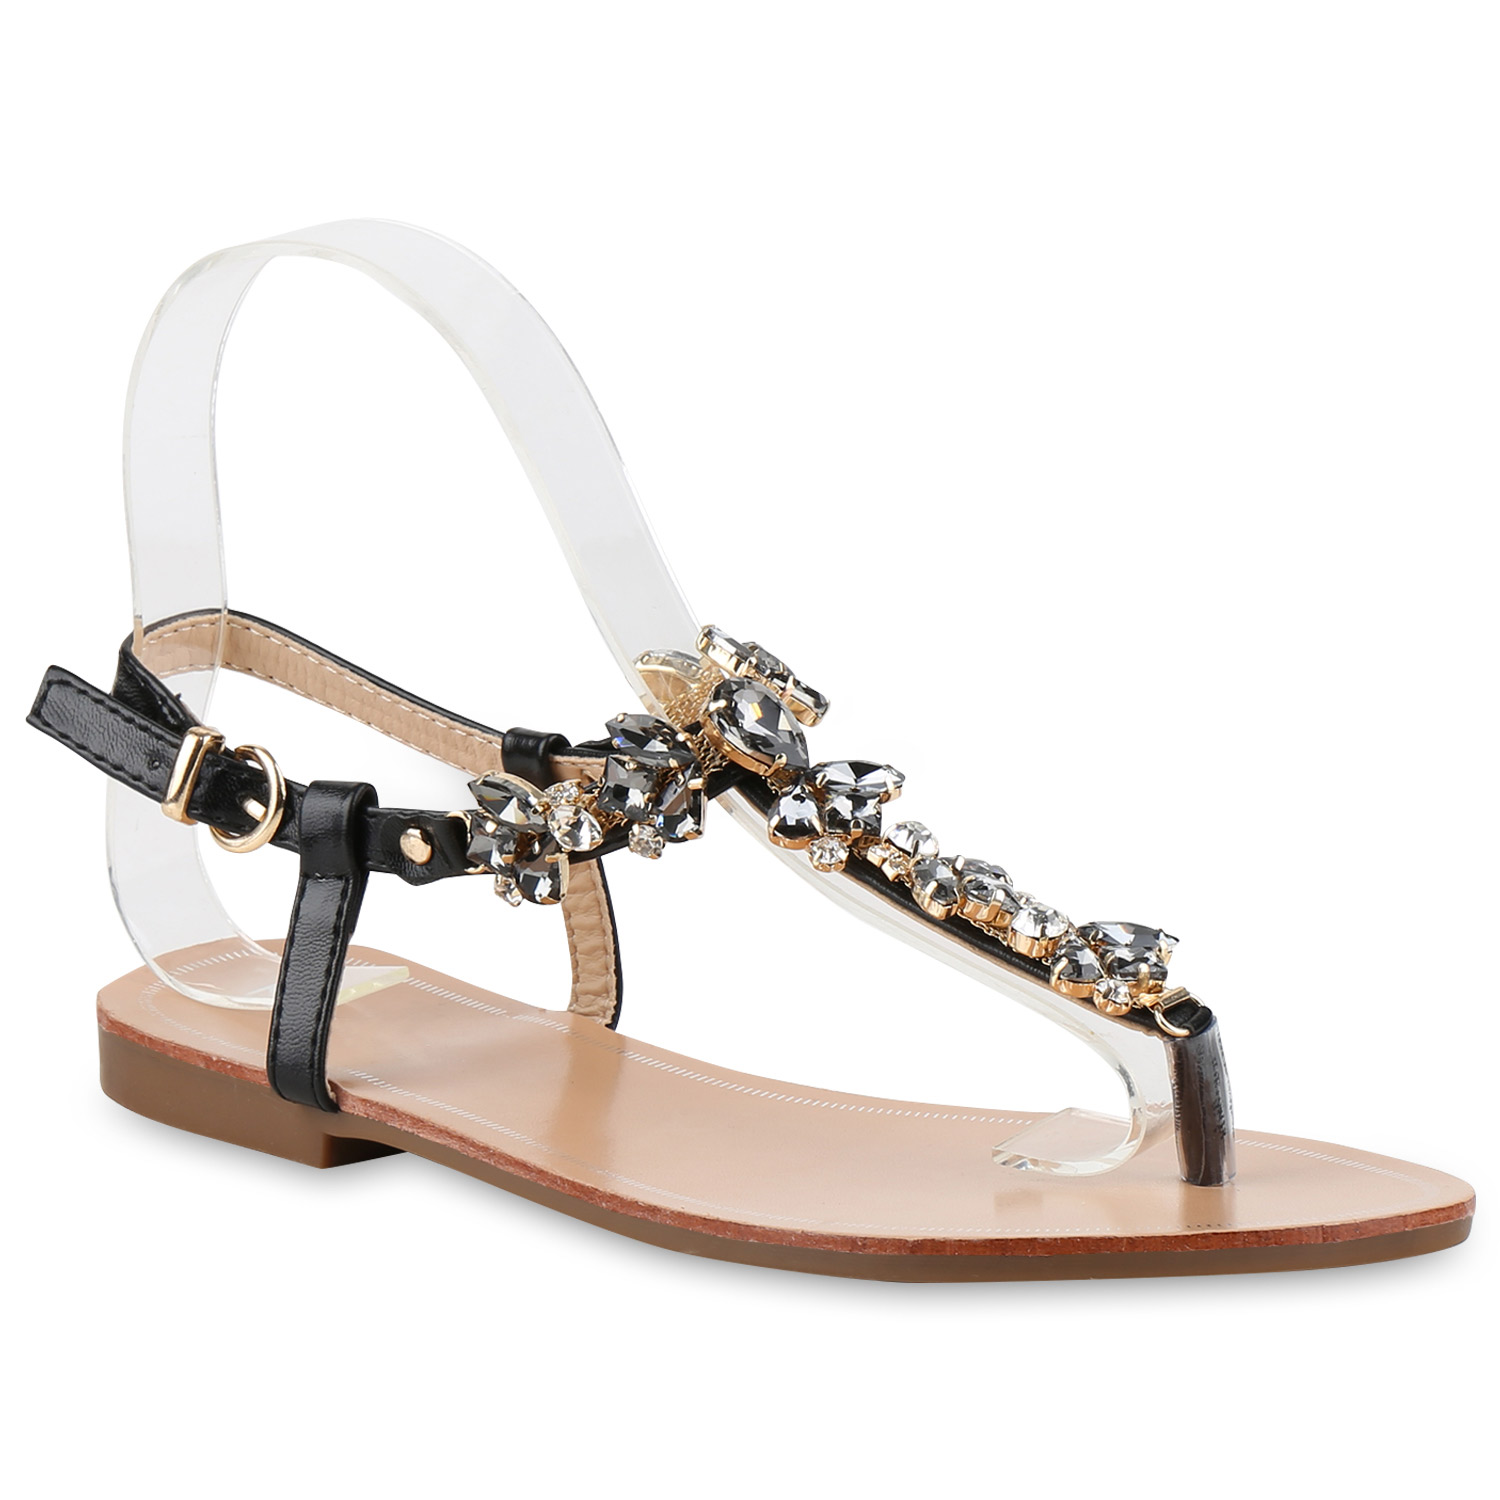 zehentrenner damen strass sandalen metallic sommer schuhe 816677 ebay. Black Bedroom Furniture Sets. Home Design Ideas